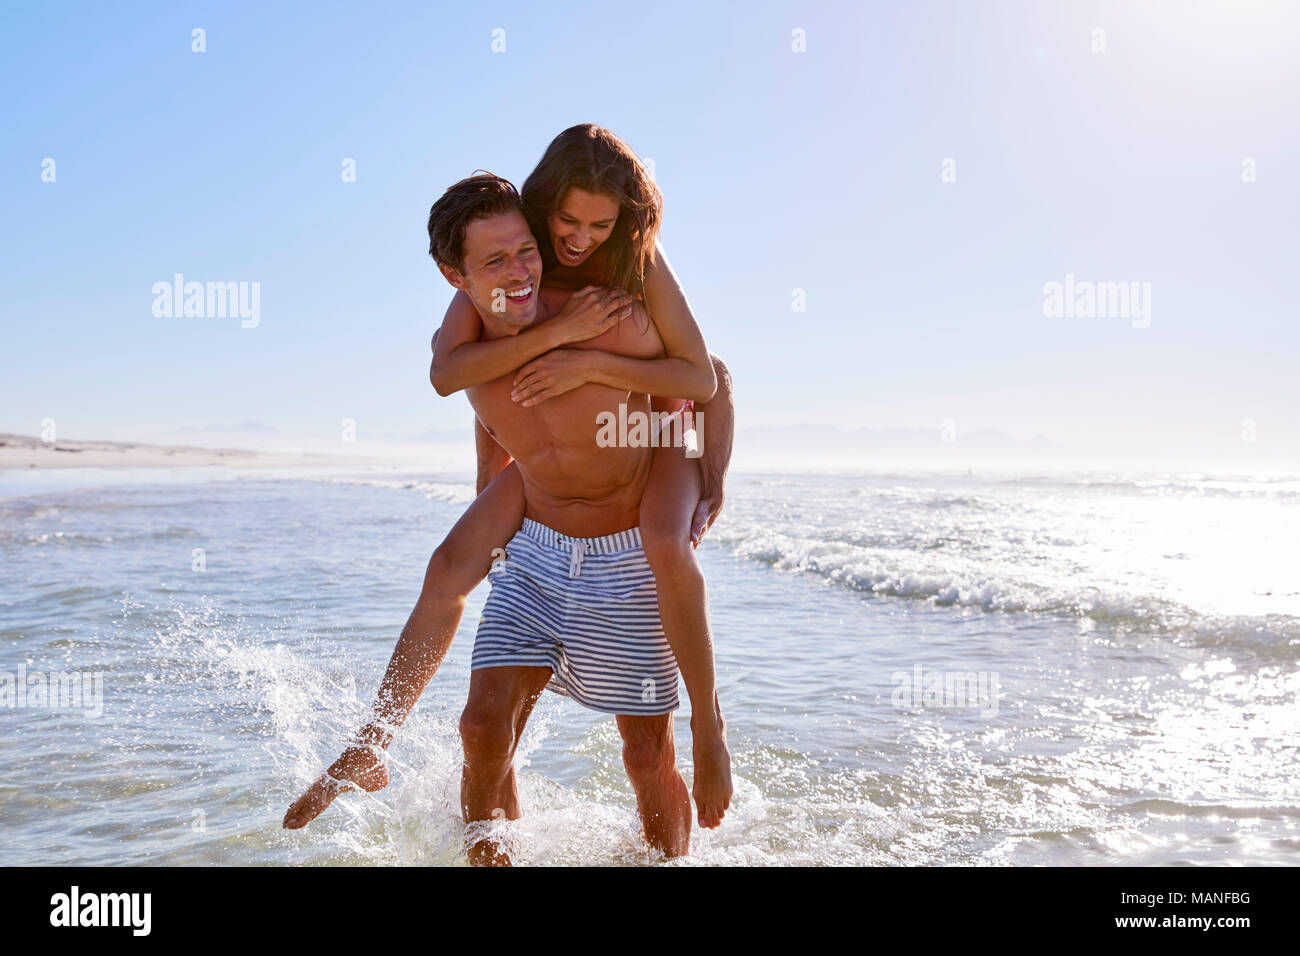 Man Giving Woman Piggyback sur été plage Locations Photo Stock